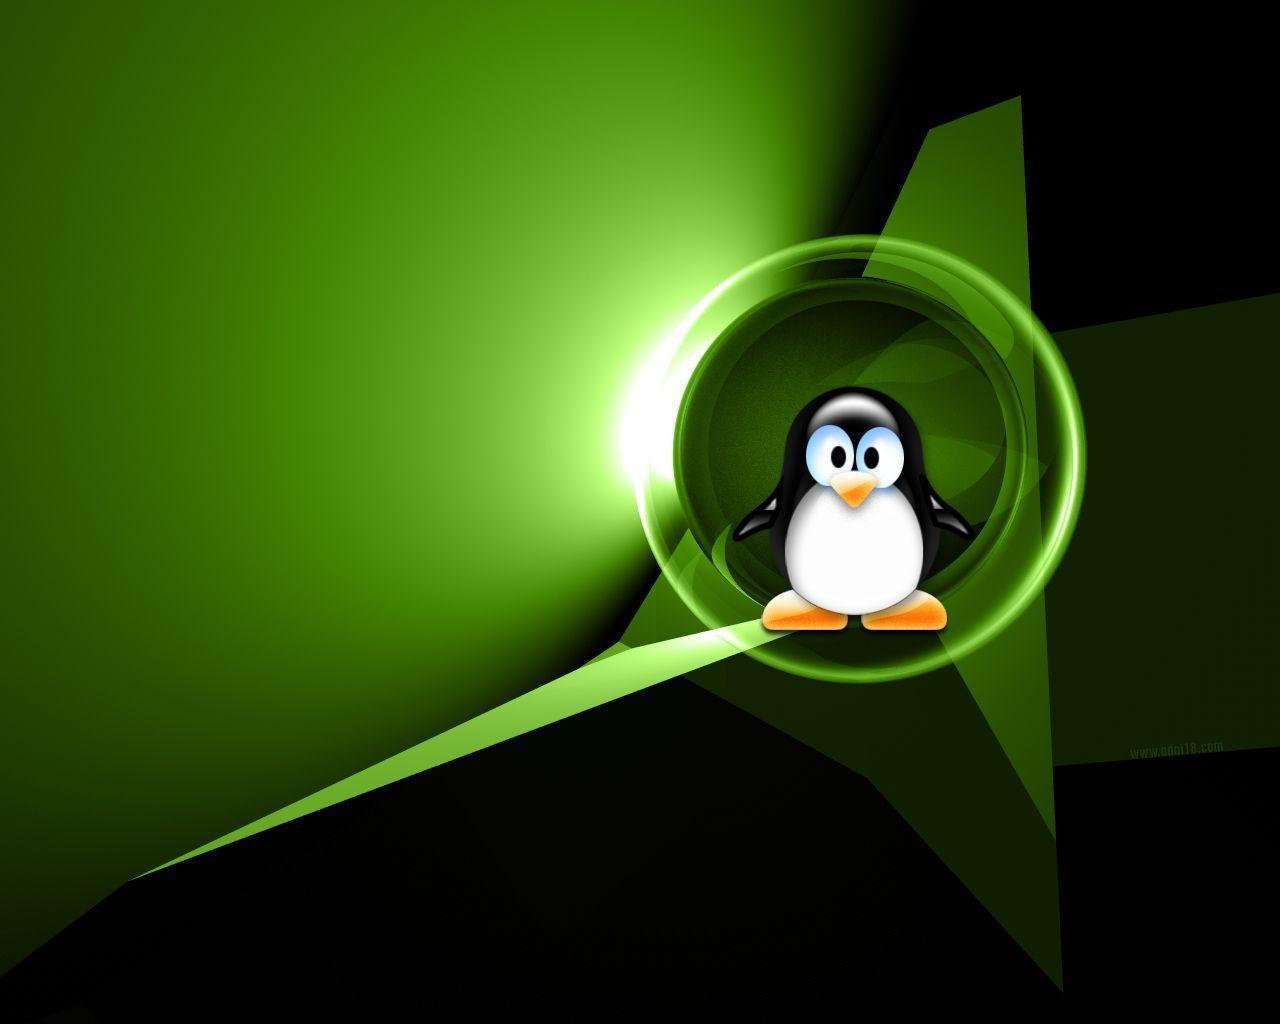 Green Tux wallpaper | Linuxers